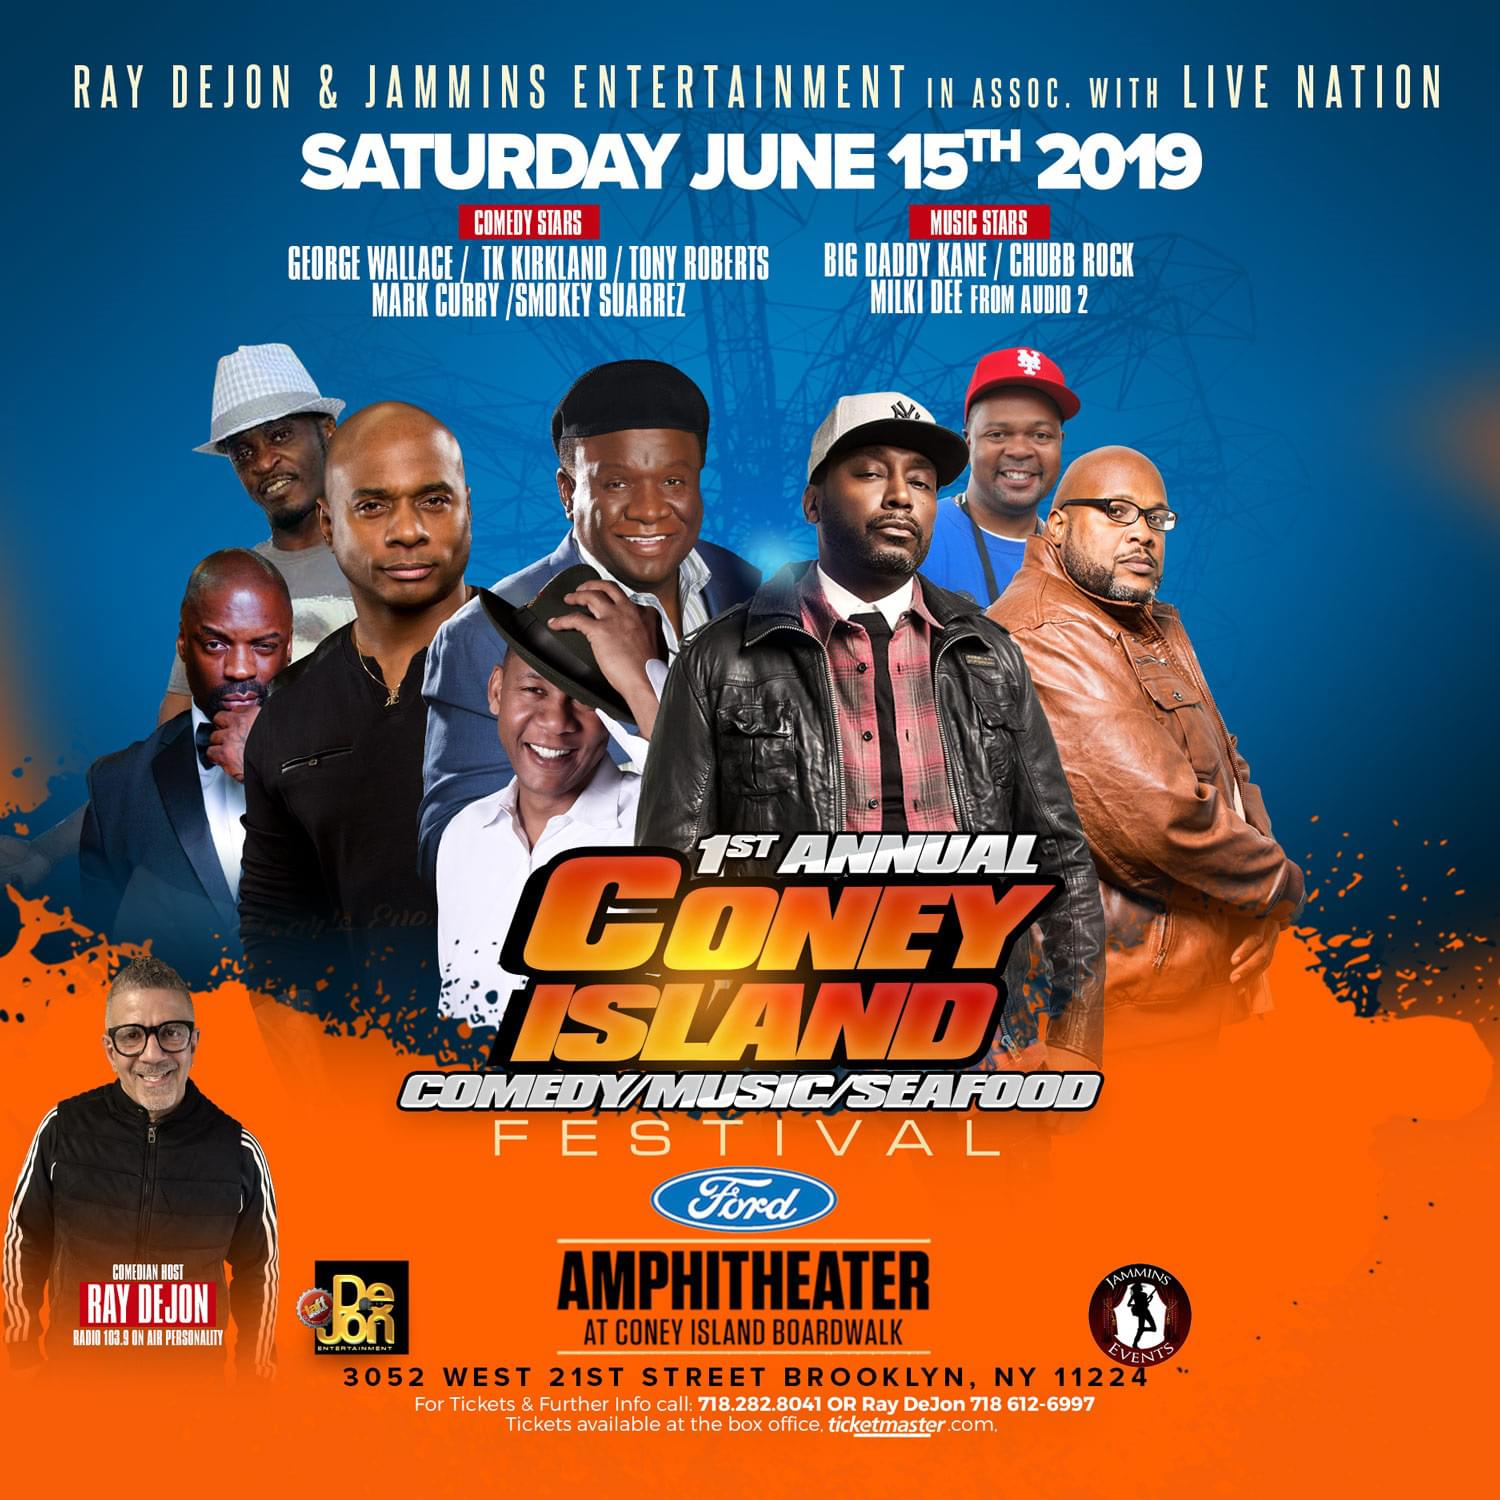 Win Tickets to The 1st Annual Coney Island Comedy, Music and Seafood Festival!